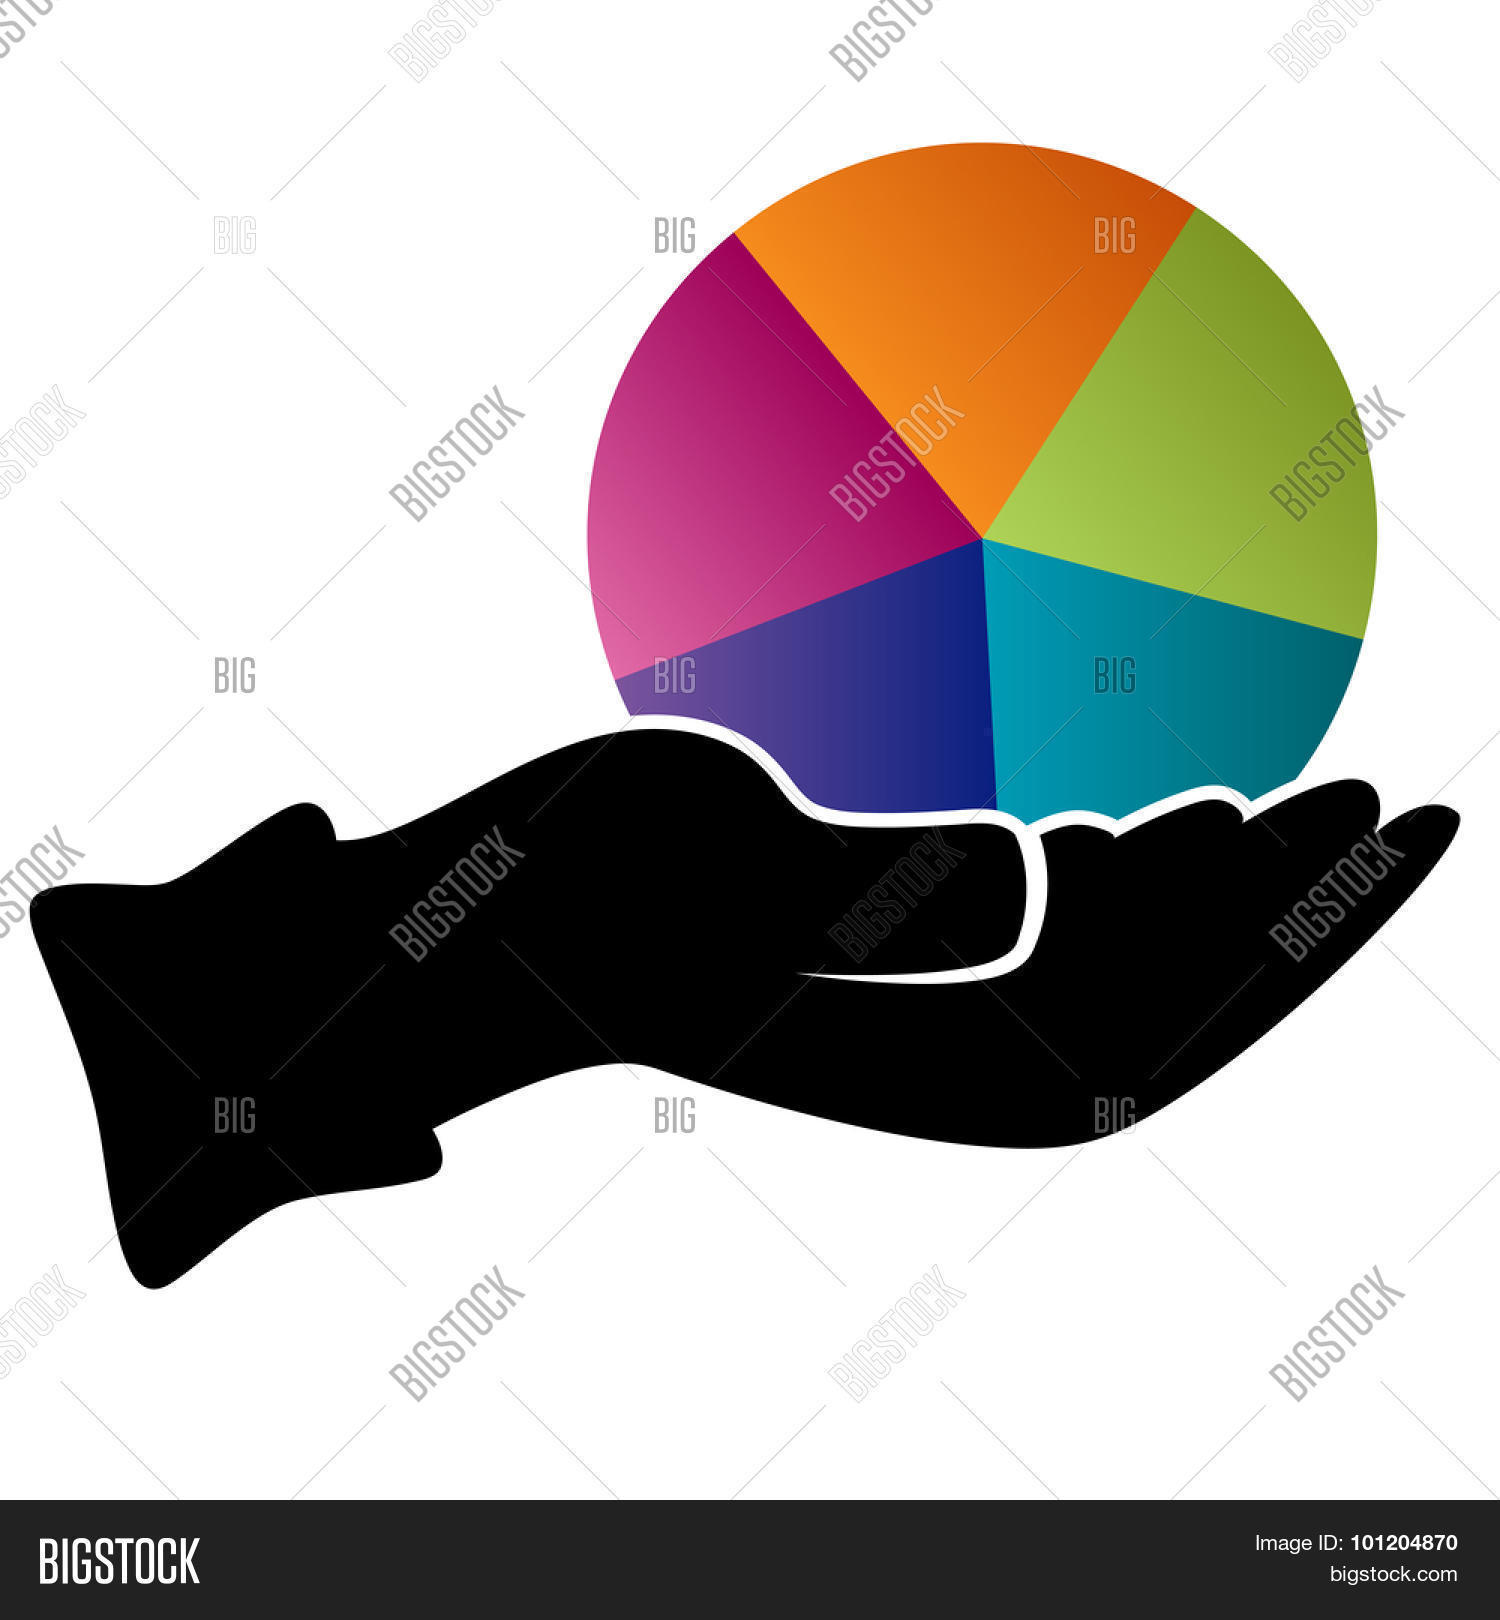 Image hand holding pie chart vector photo bigstock an image of a hand holding a pie chart representing diversification icon nvjuhfo Gallery